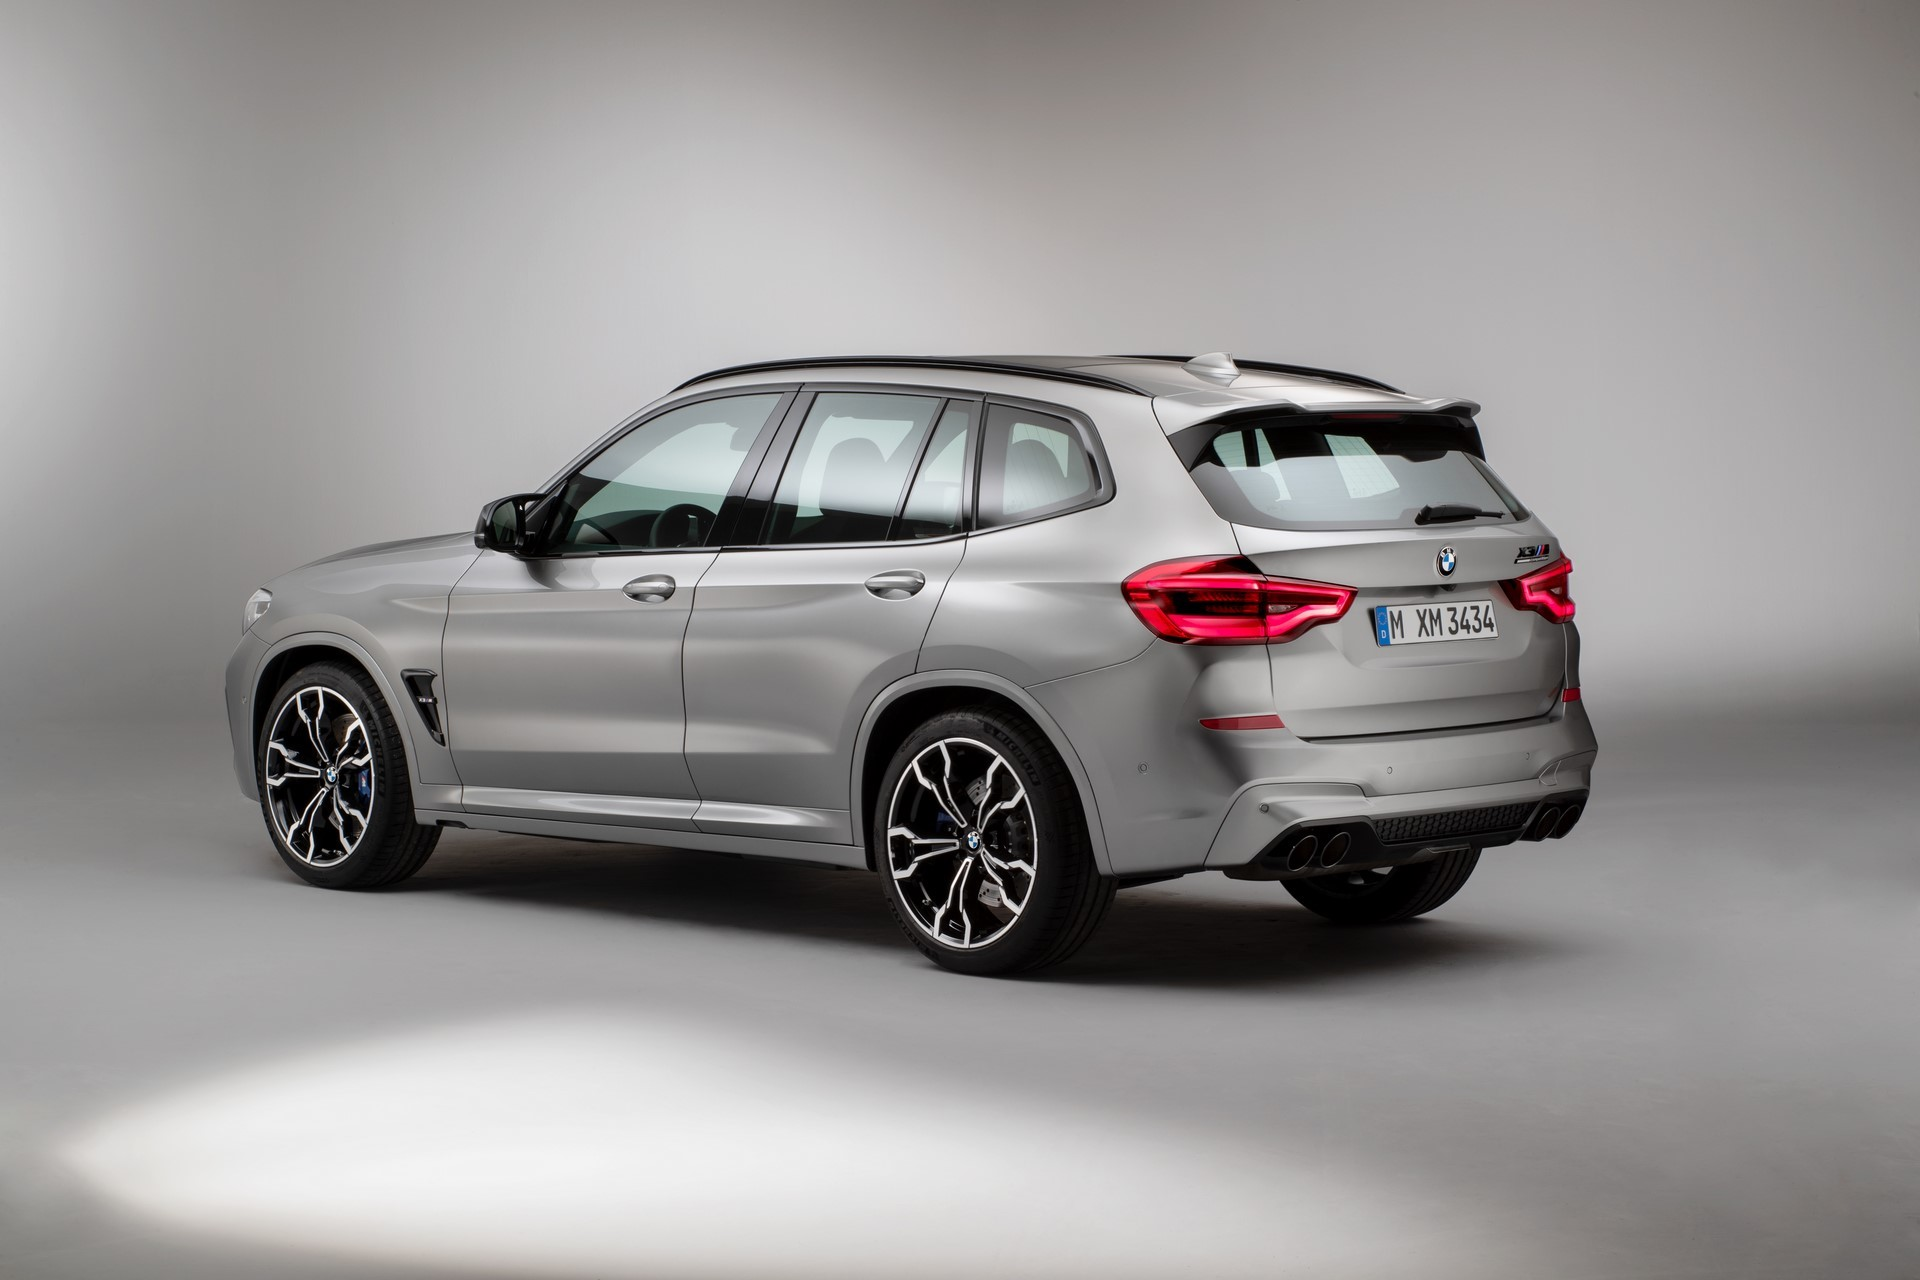 BMW X3 M and X4 M 2019 (185)